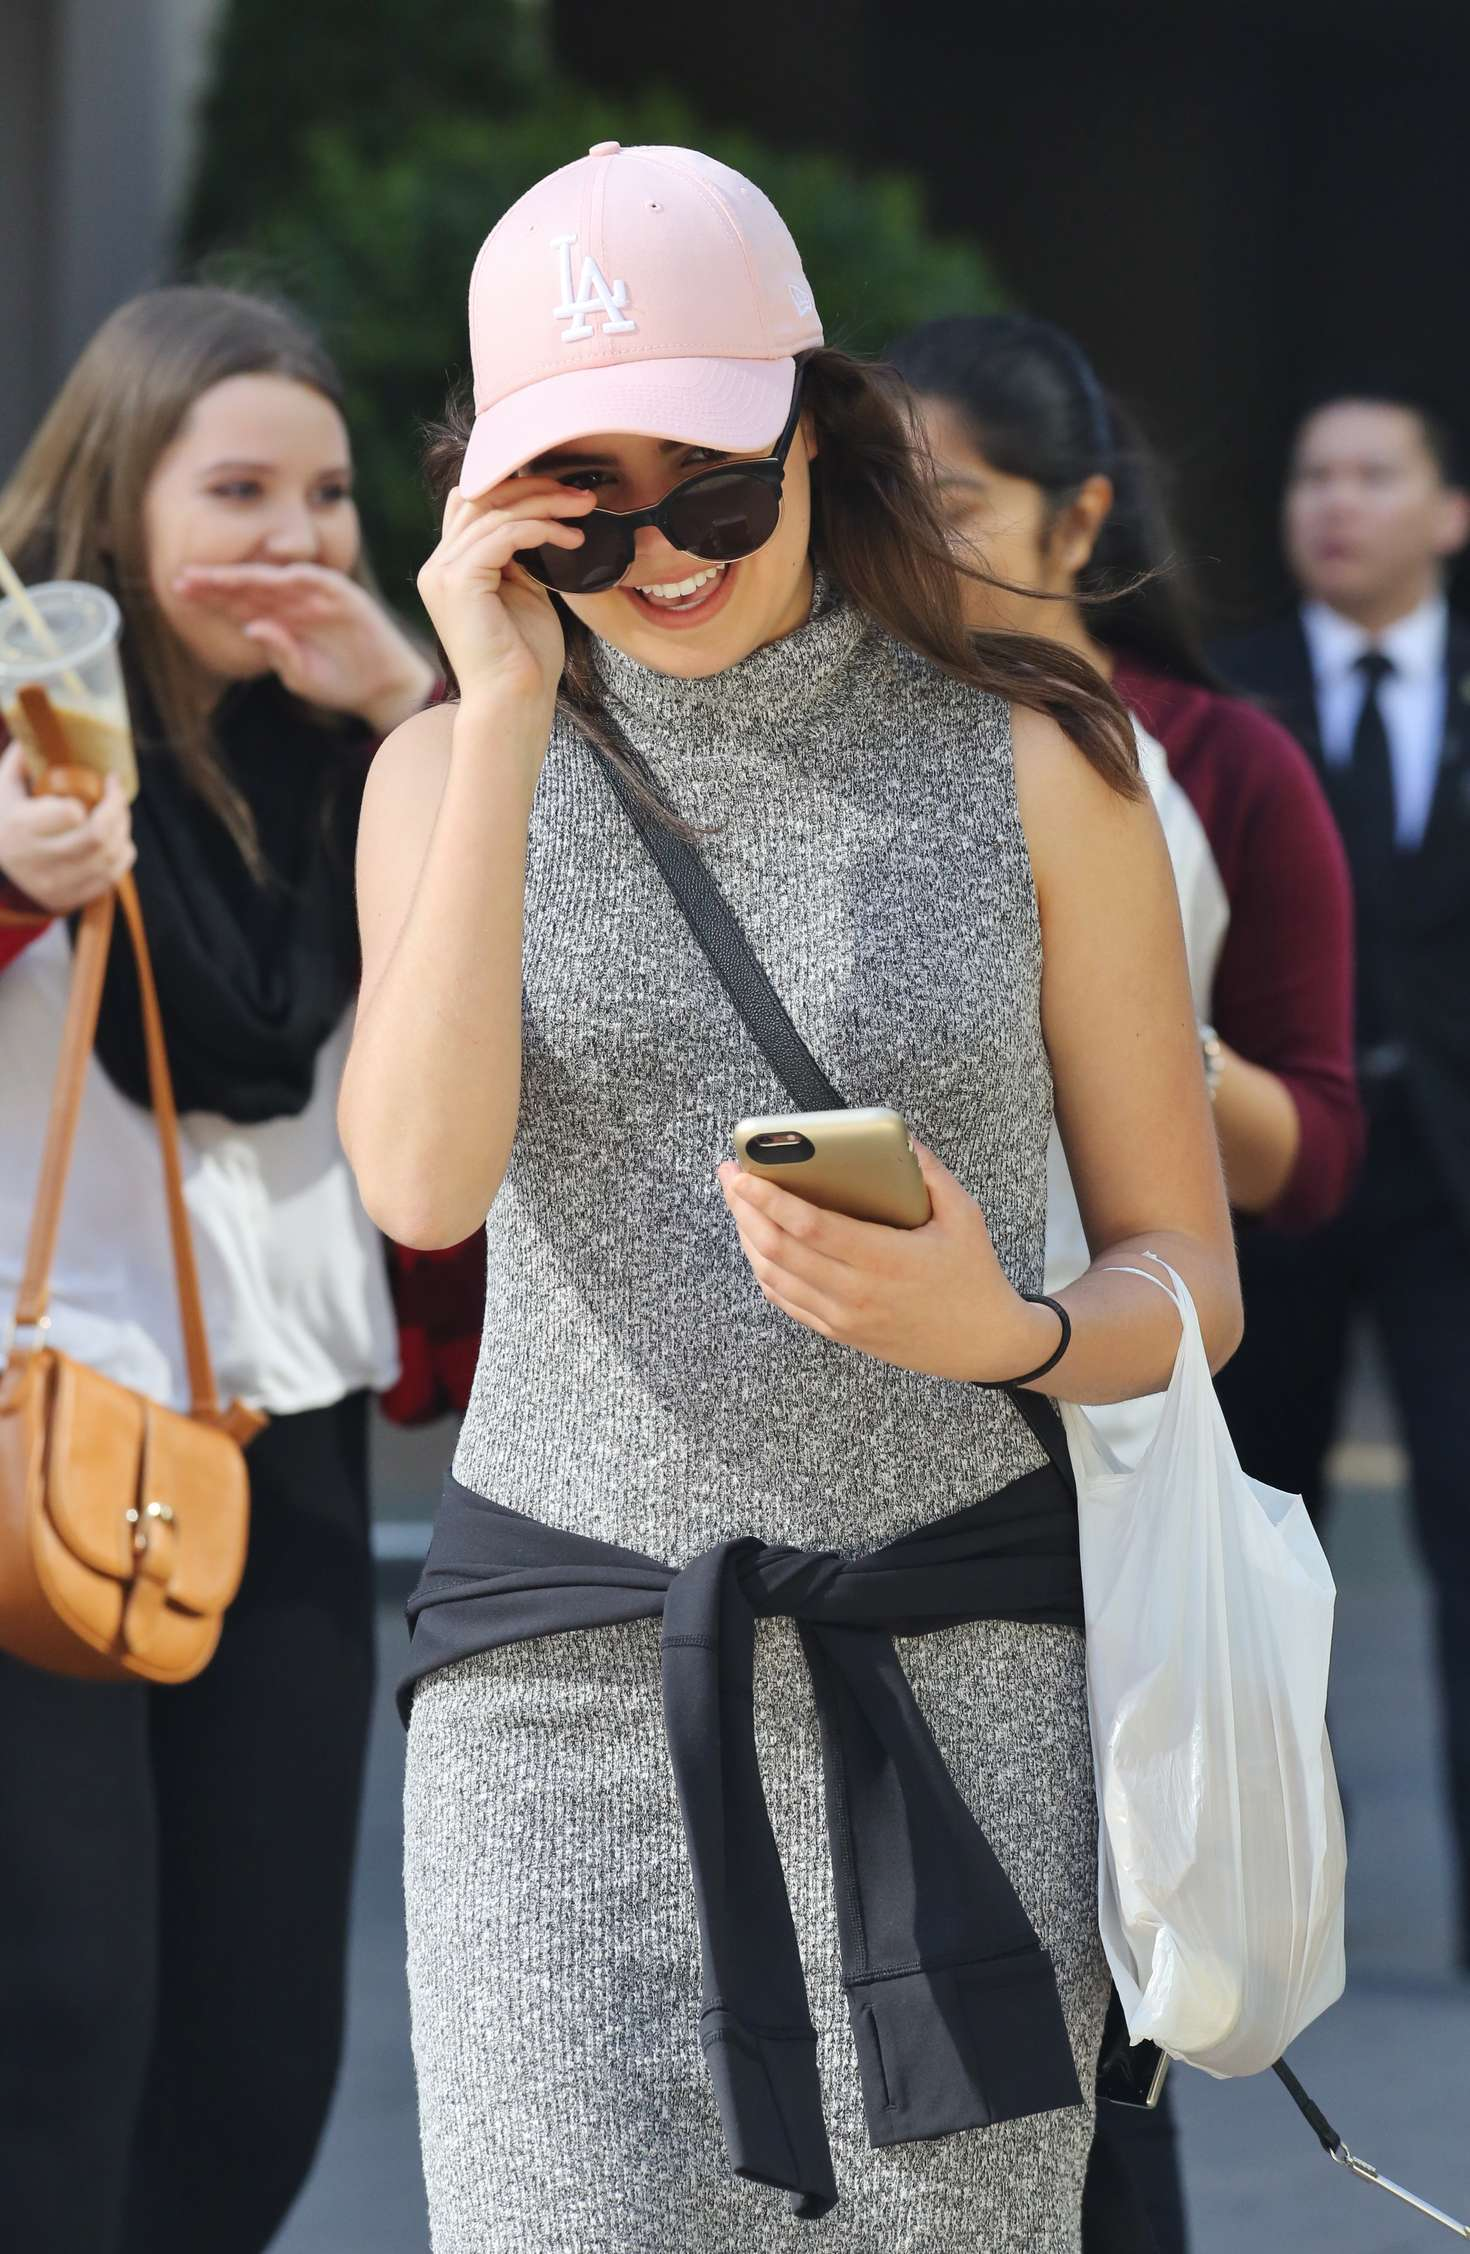 Bailee madison leaving her hotel in vancouver